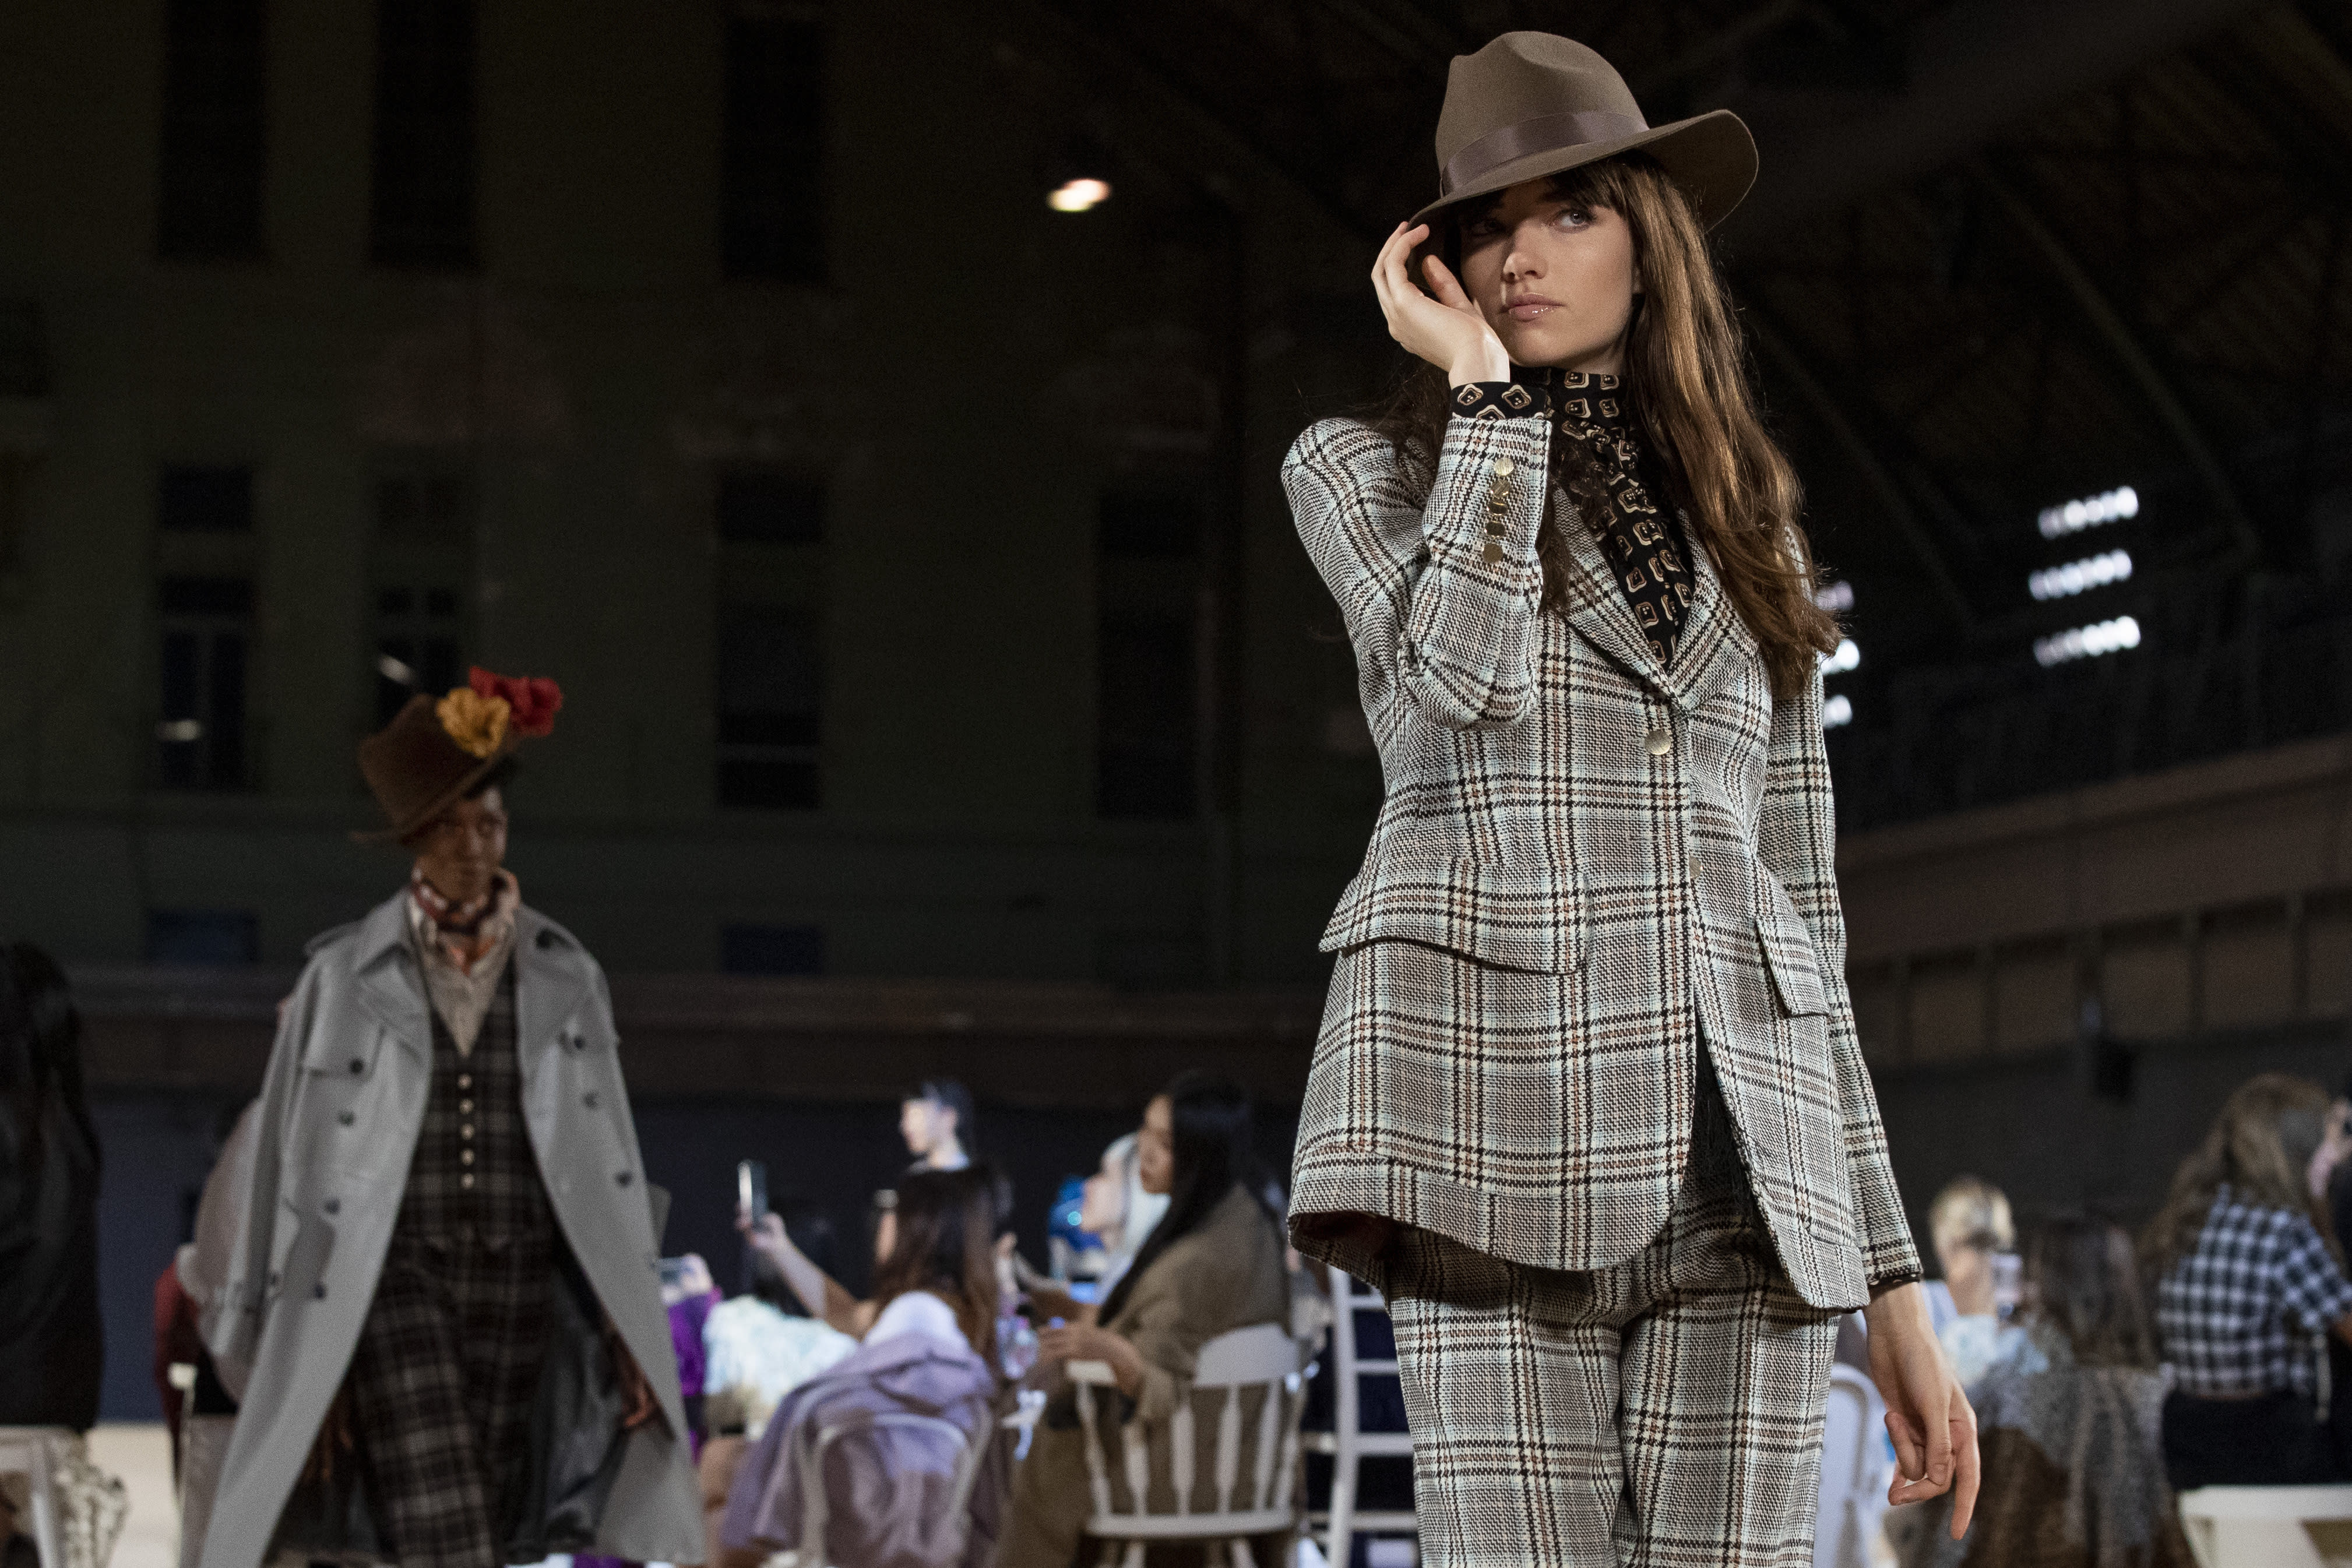 FILE - The Marc Jacobs collection is modeled during Fashion Week in New York on Sept. 11, 2019. With no celebs in the front row, no paparazzi chasing models down the streets, no stiletto-heeled crowds and no live shows at all, is there even a point to doing Fashion Week in 2020? Well, yes, say organizers: It's about business. And jobs. And survival. (AP Photo/Mary Altaffer, File)